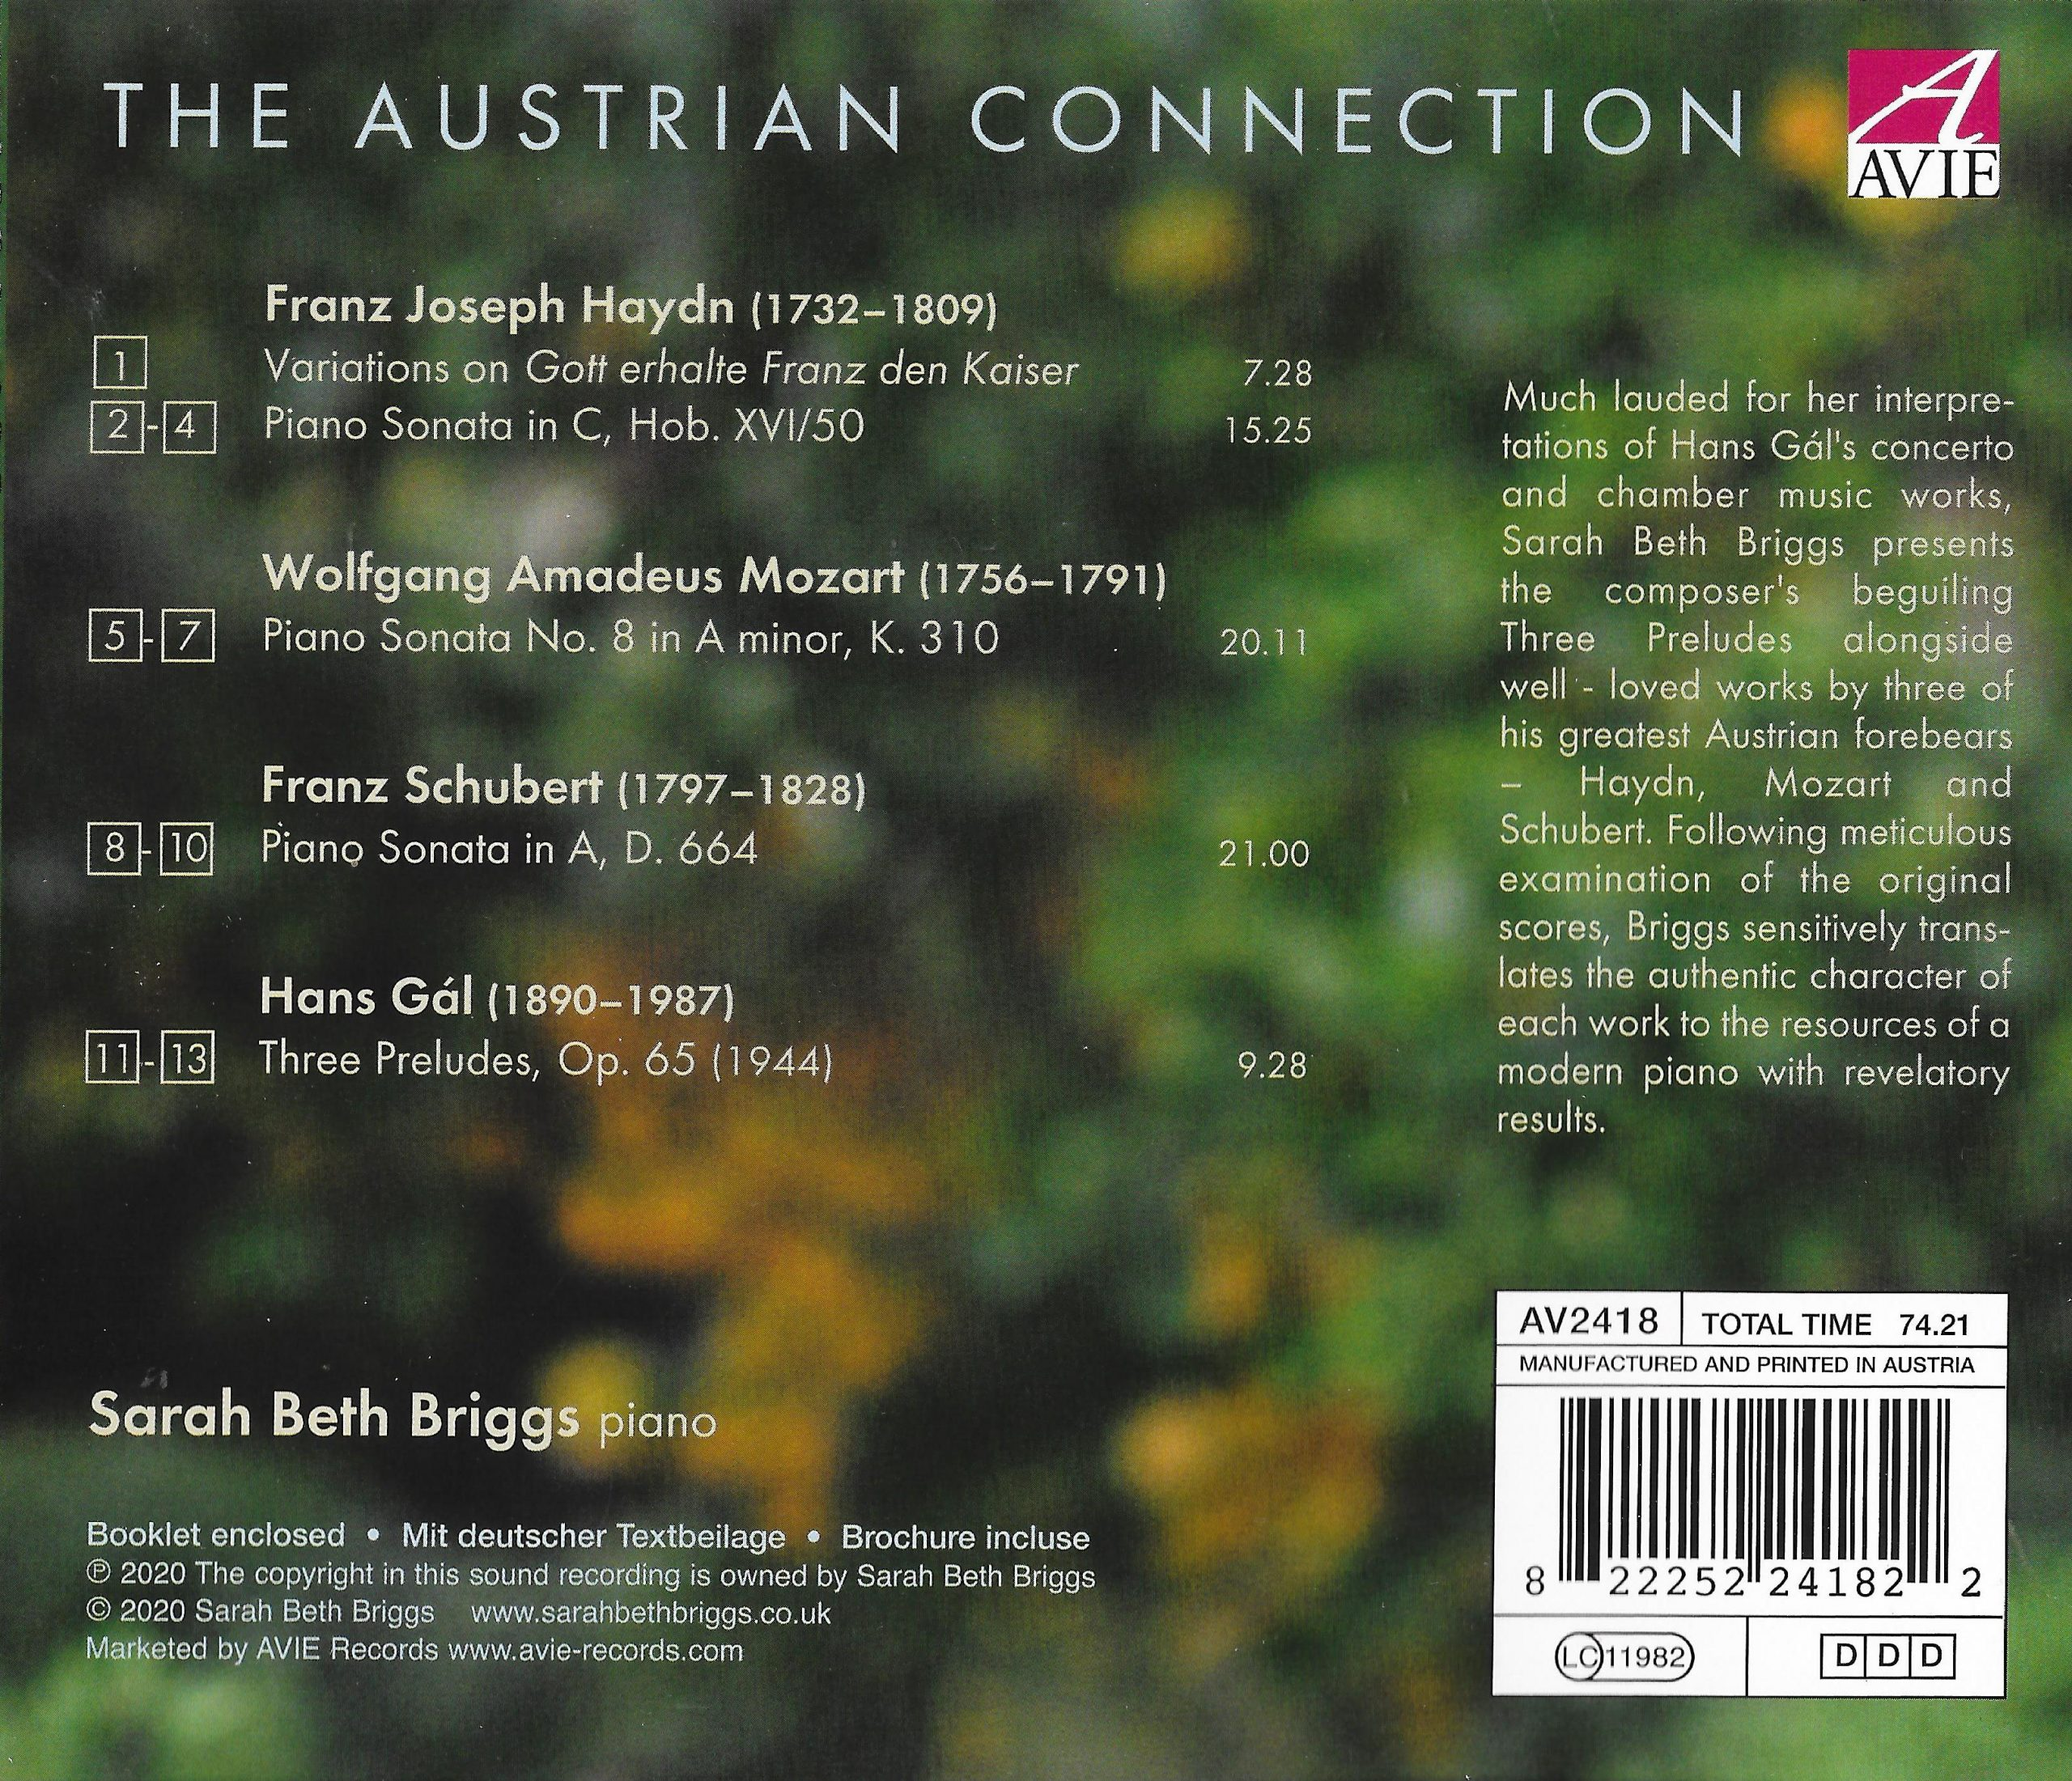 Sarah Beth Briggs The Austrian Connection album back cover